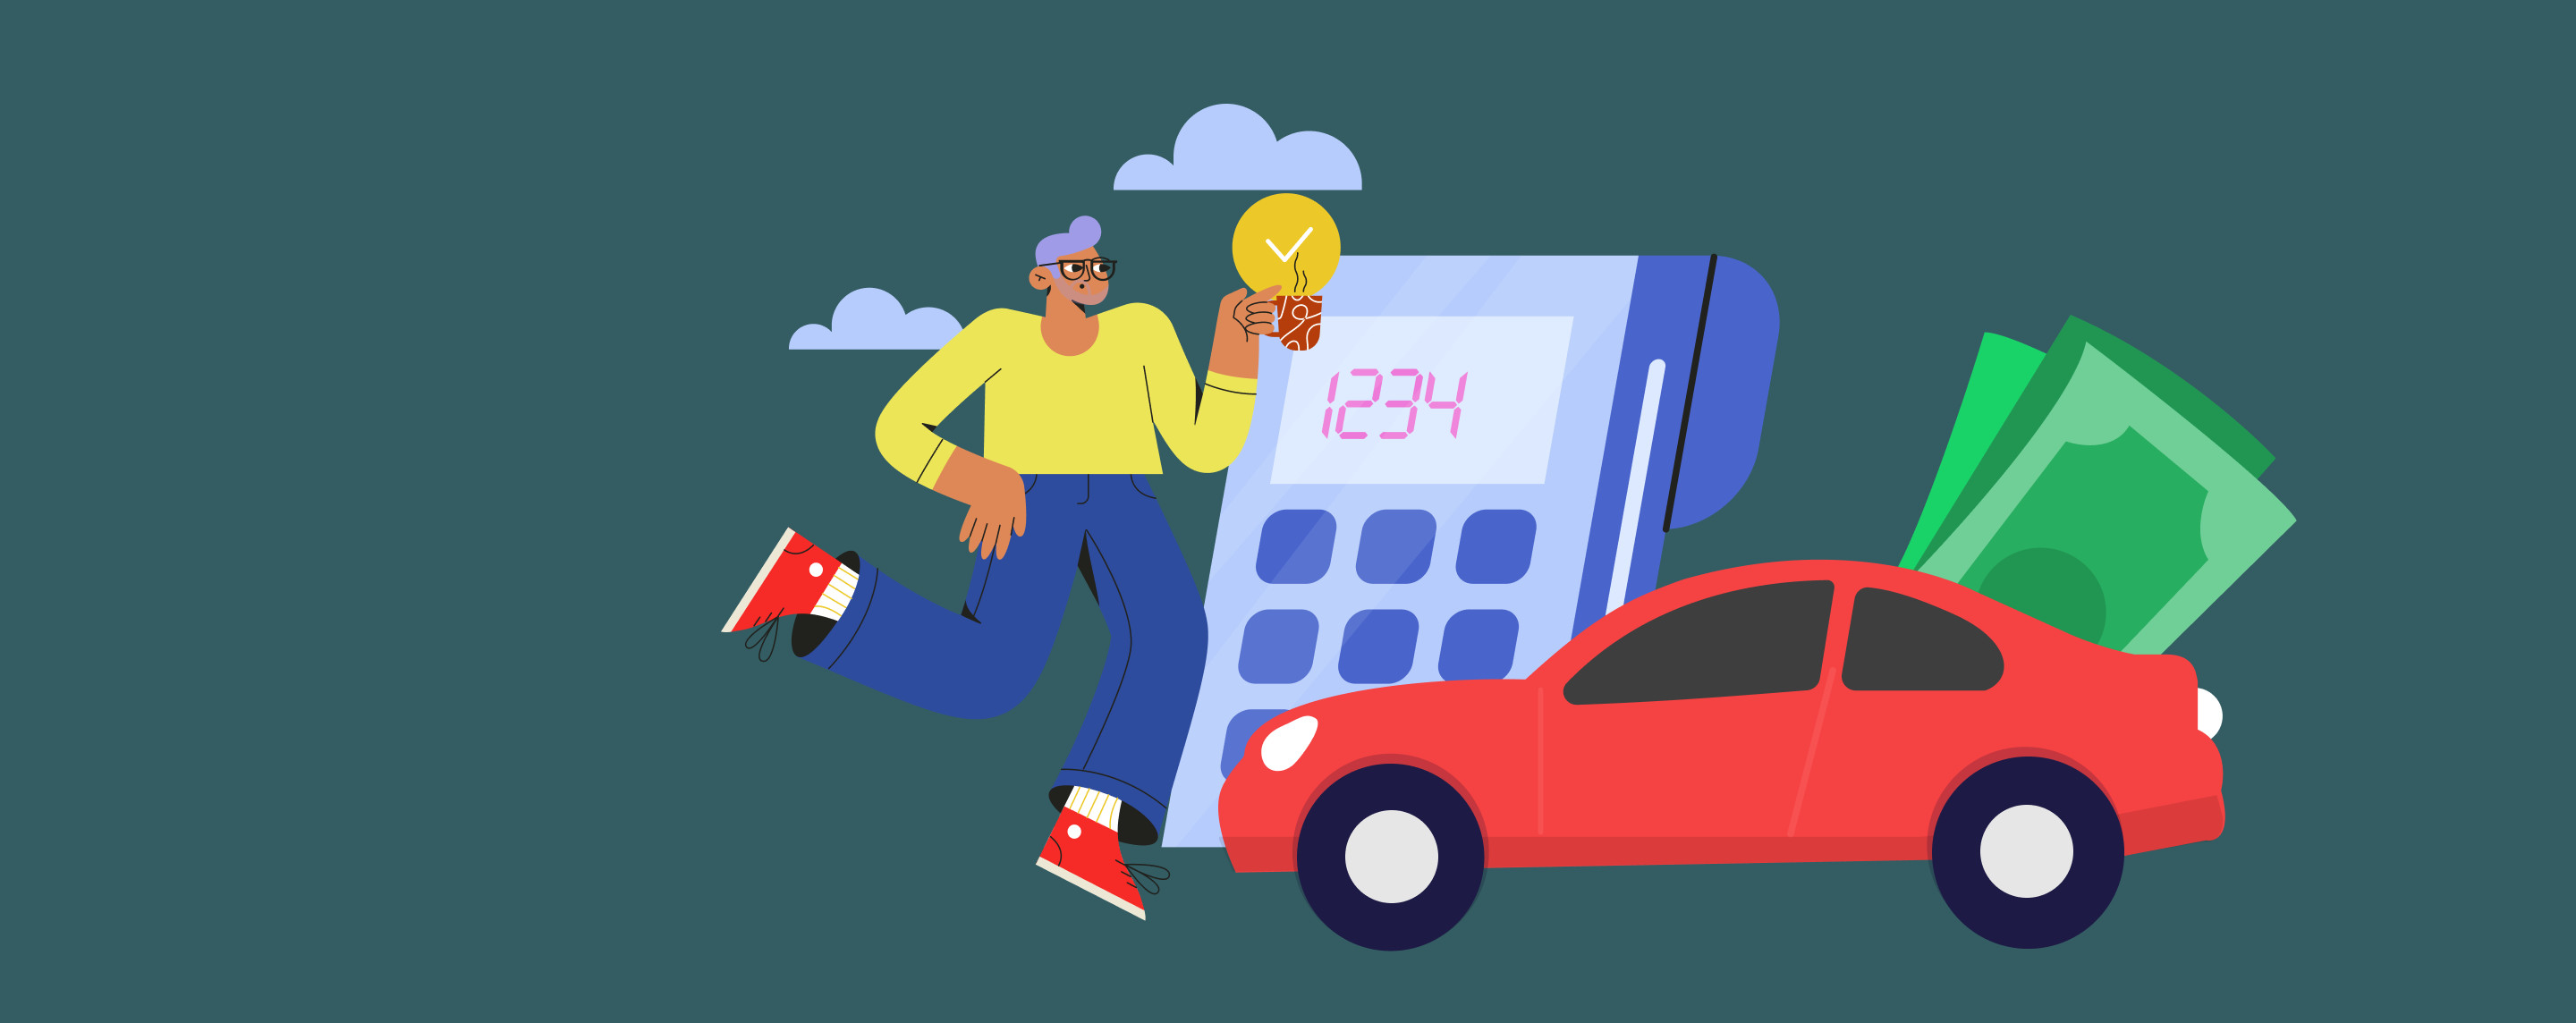 How Much Does It Cost to Refinance a Car?; Learn how much it costs to refinance a car so you can find the right financing for your budget and auto.